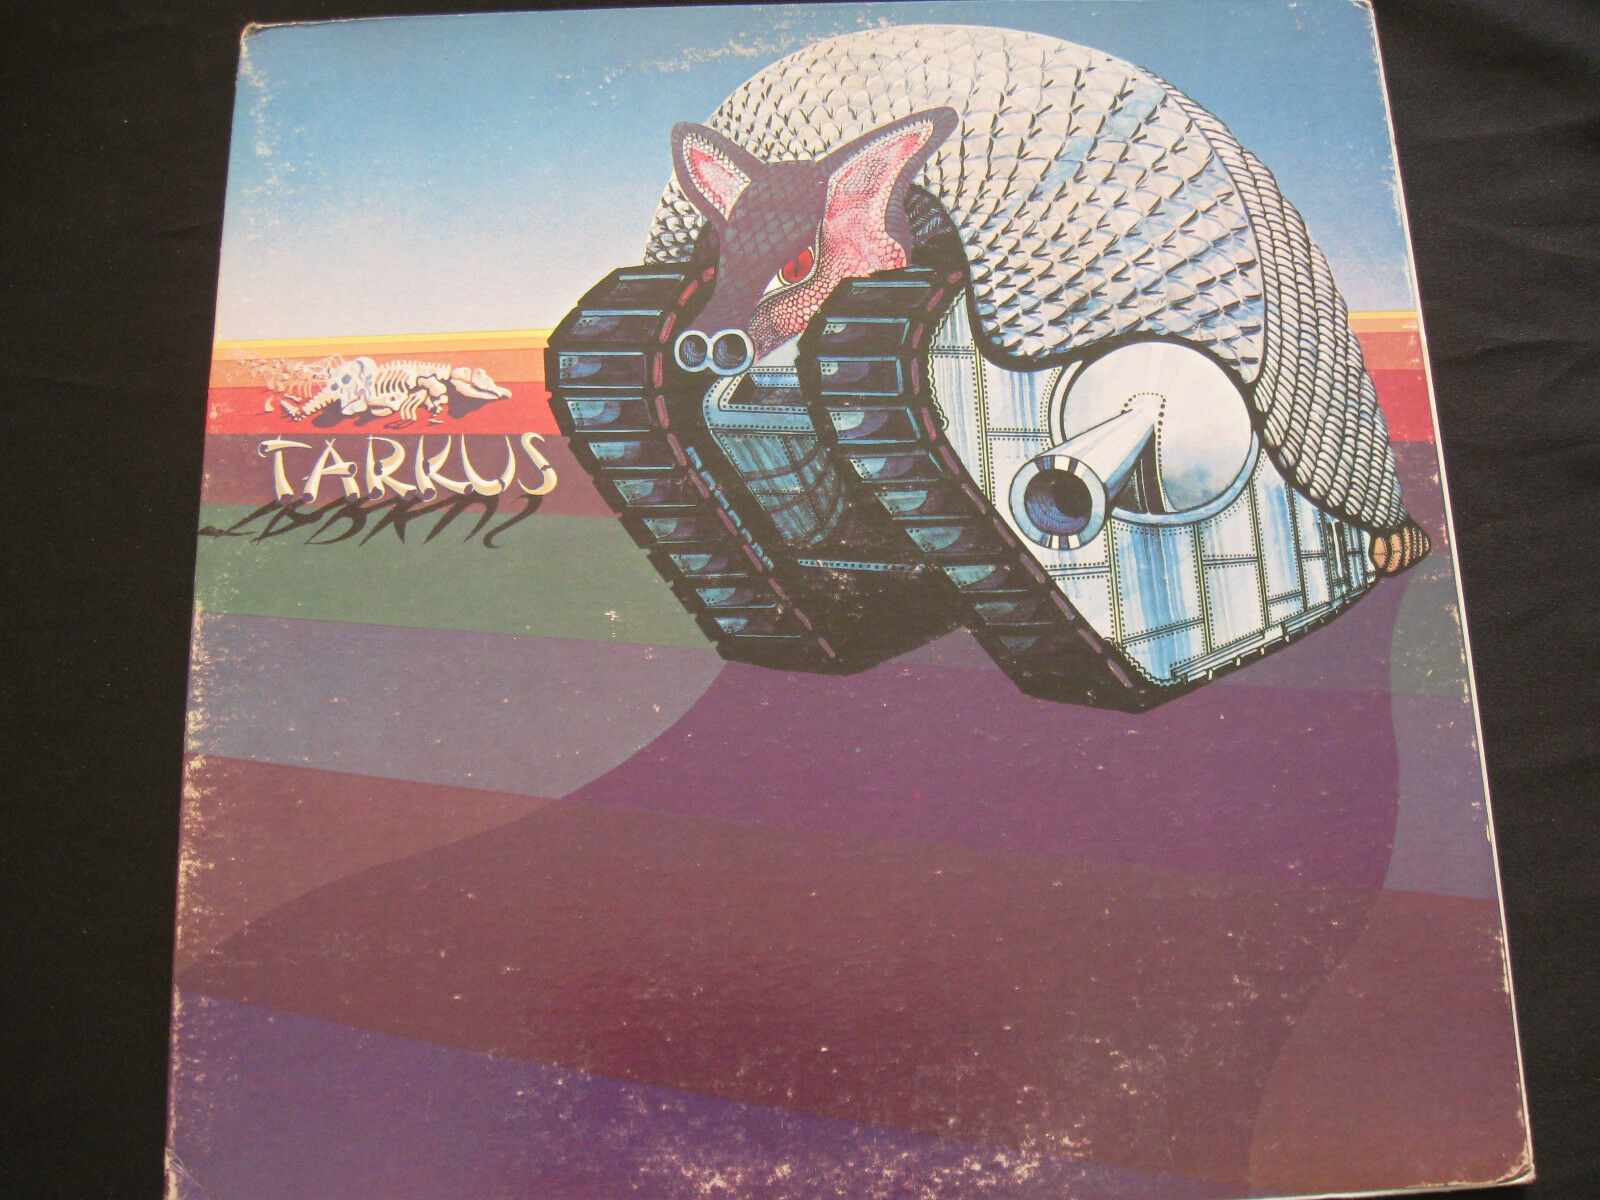 Emerson Lake & Palmer ELP Tarkus Cotillion SD 9900 Stereo Vinyl LP Record Album